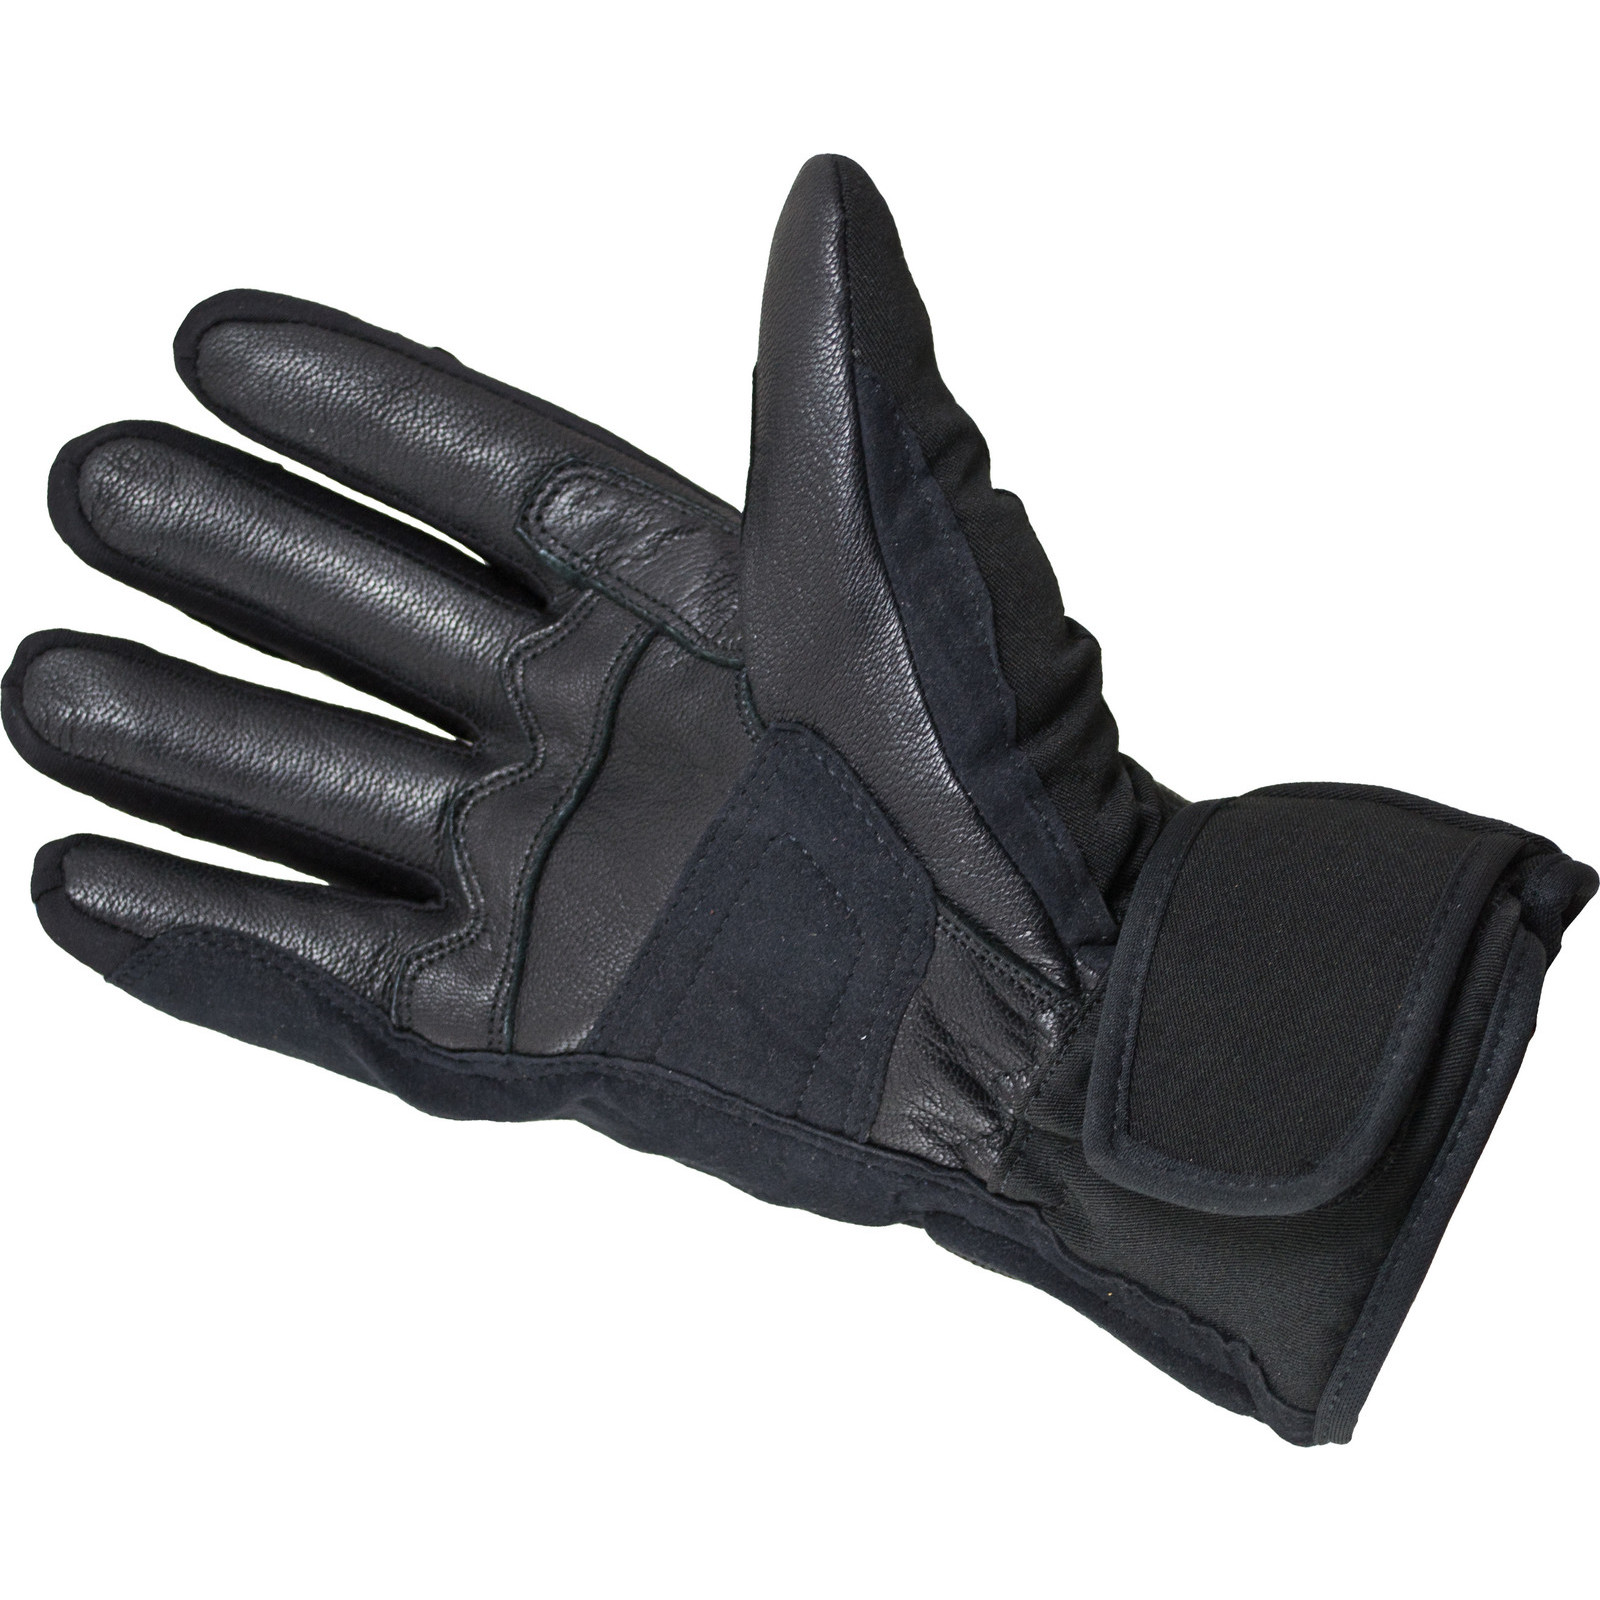 Motorcycle gloves thinsulate -  Picture 9 Of 11